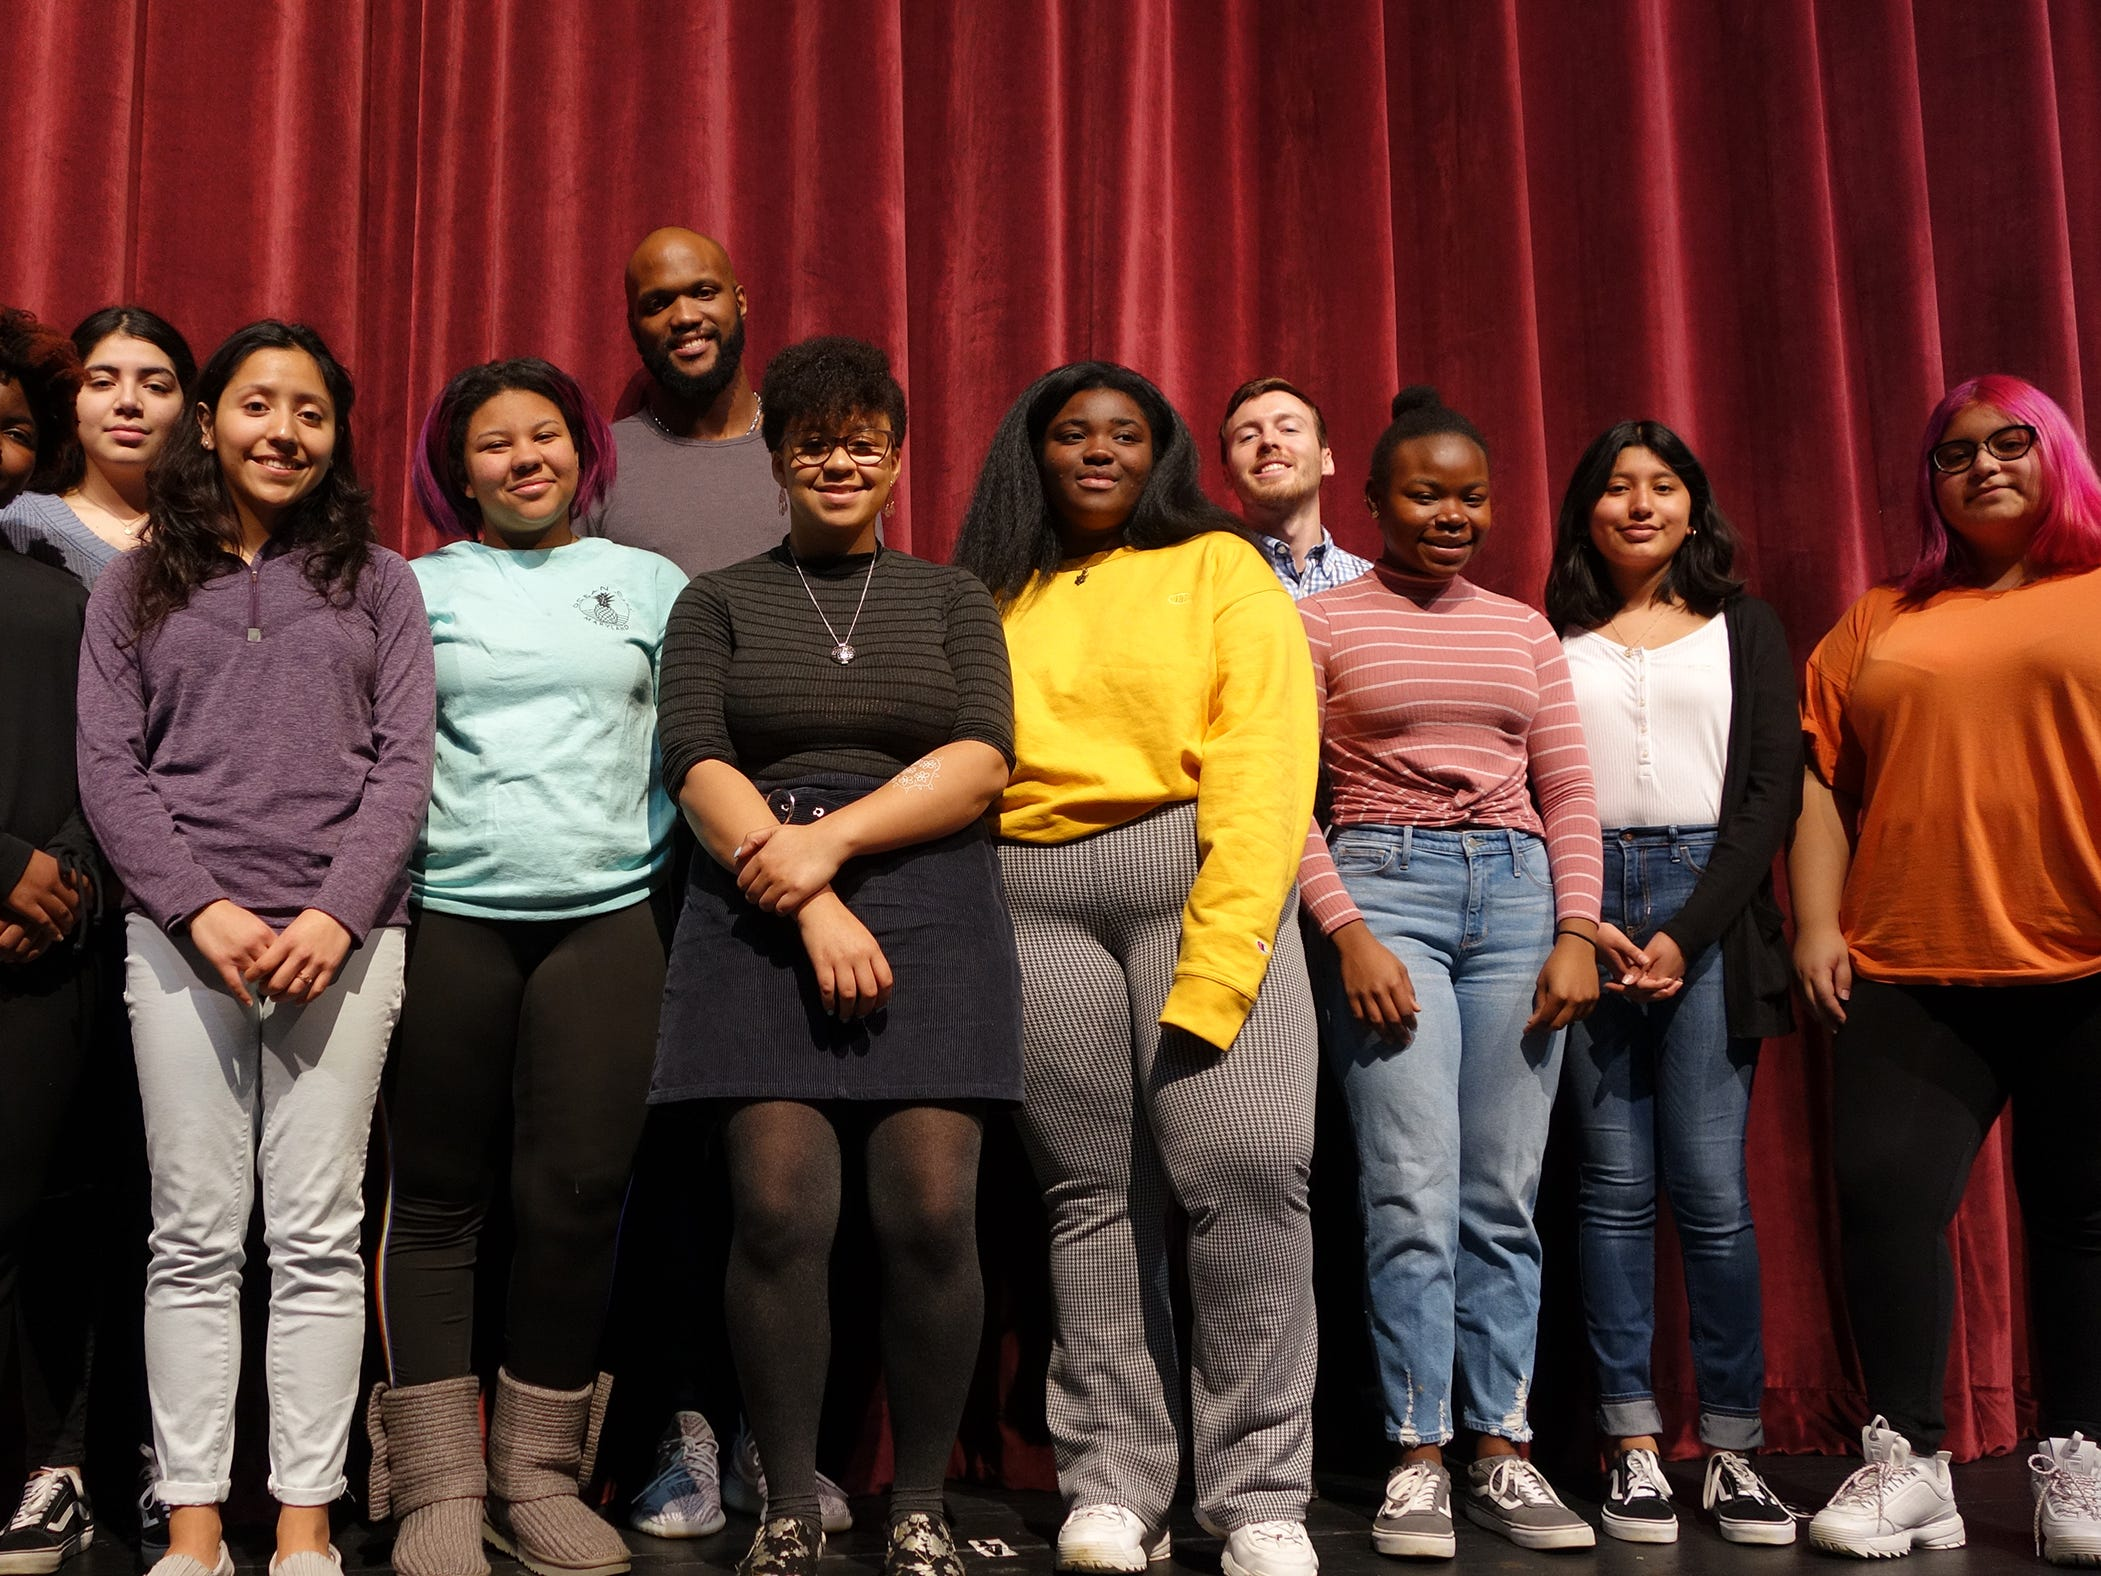 Red Bank Regional students and staff celebrated Black History Month with a narrated program that recognized contributions of African Americans in subjects that included the Civil Rights movement, music, literature, science, sports, politics and entertainment.